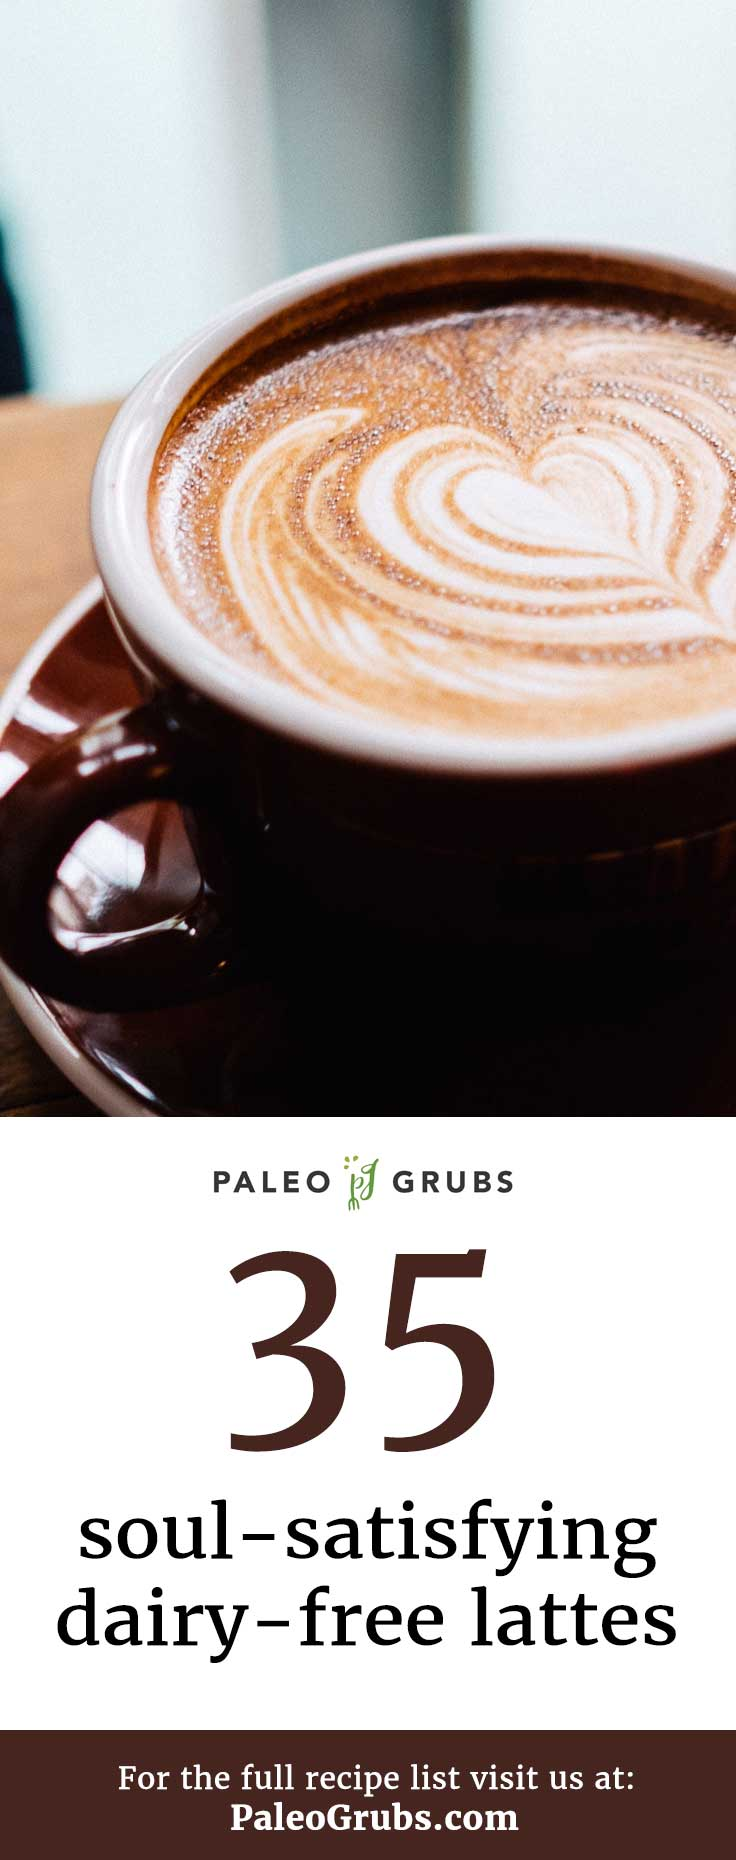 Love this list of dairy-free lattes! A must-read for anyone with diary issues or diet restrictions.